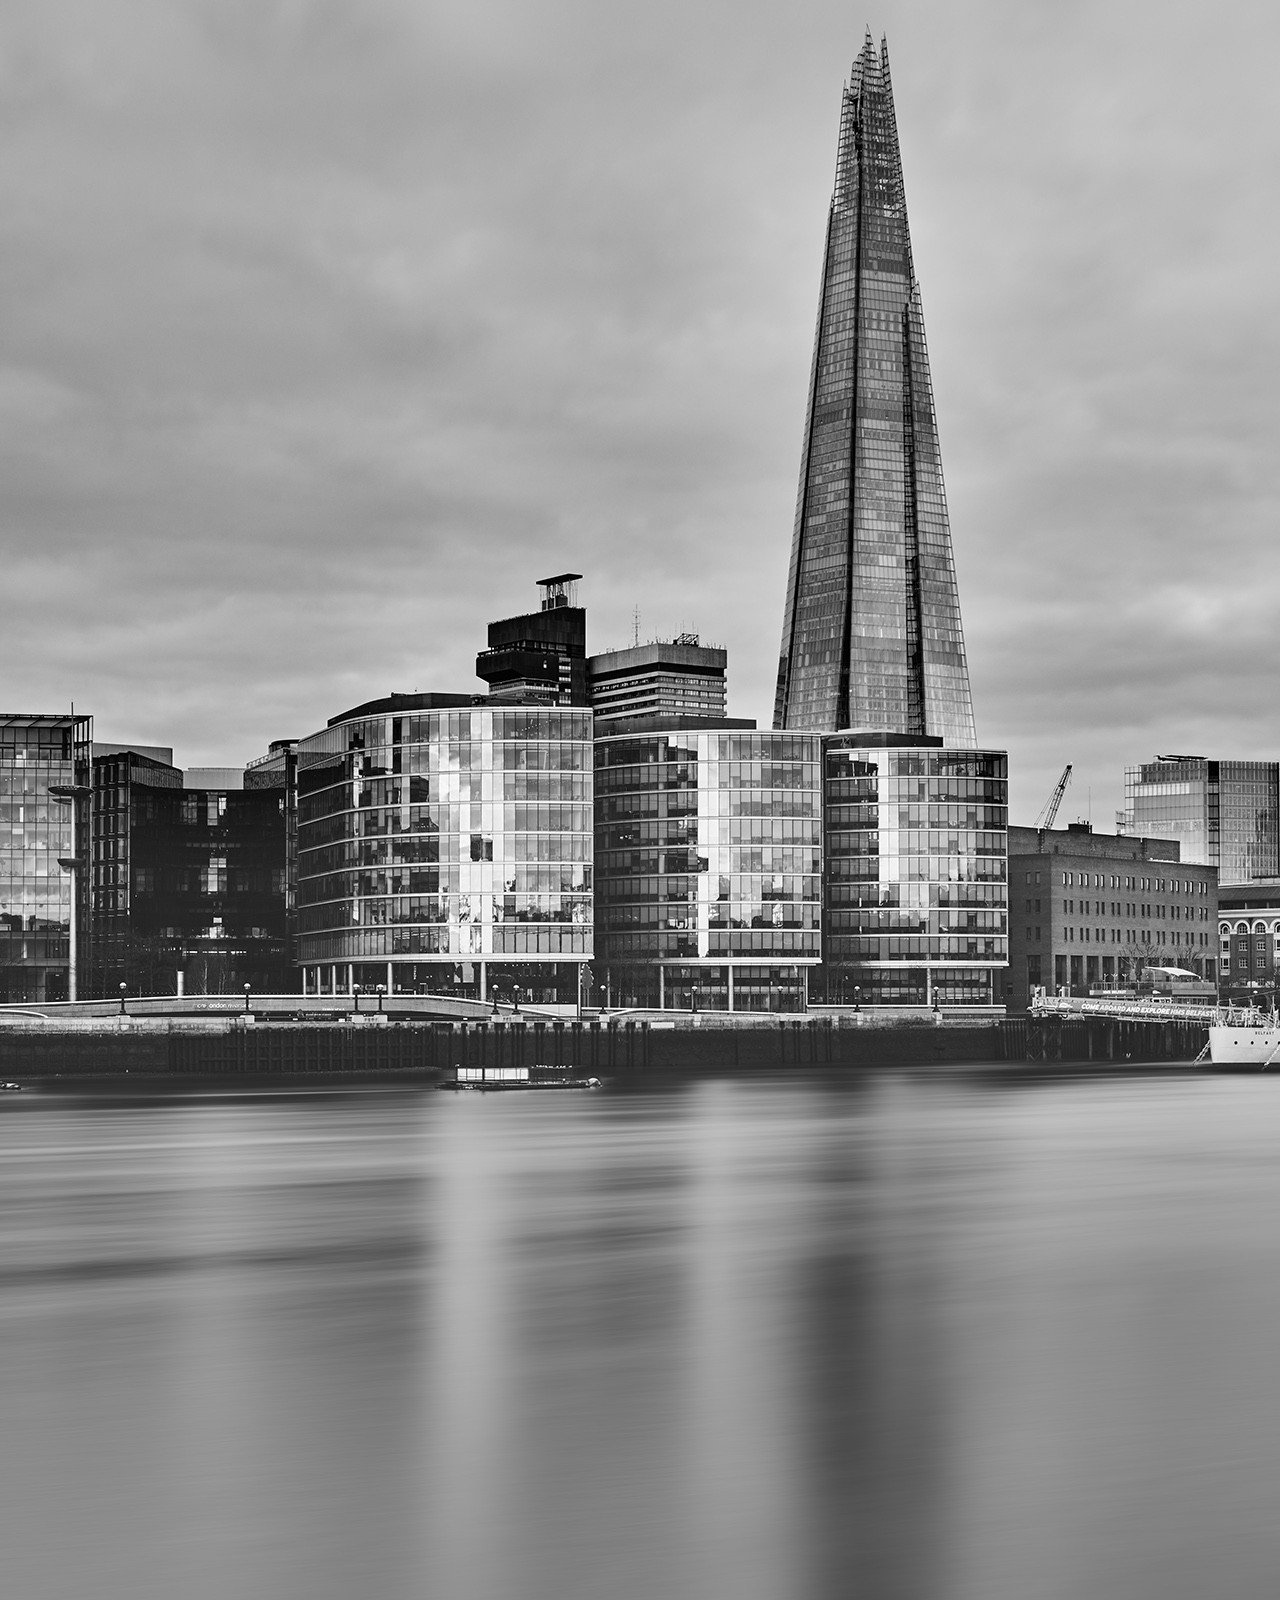 The Shard av Peder Aaserud Eikeland